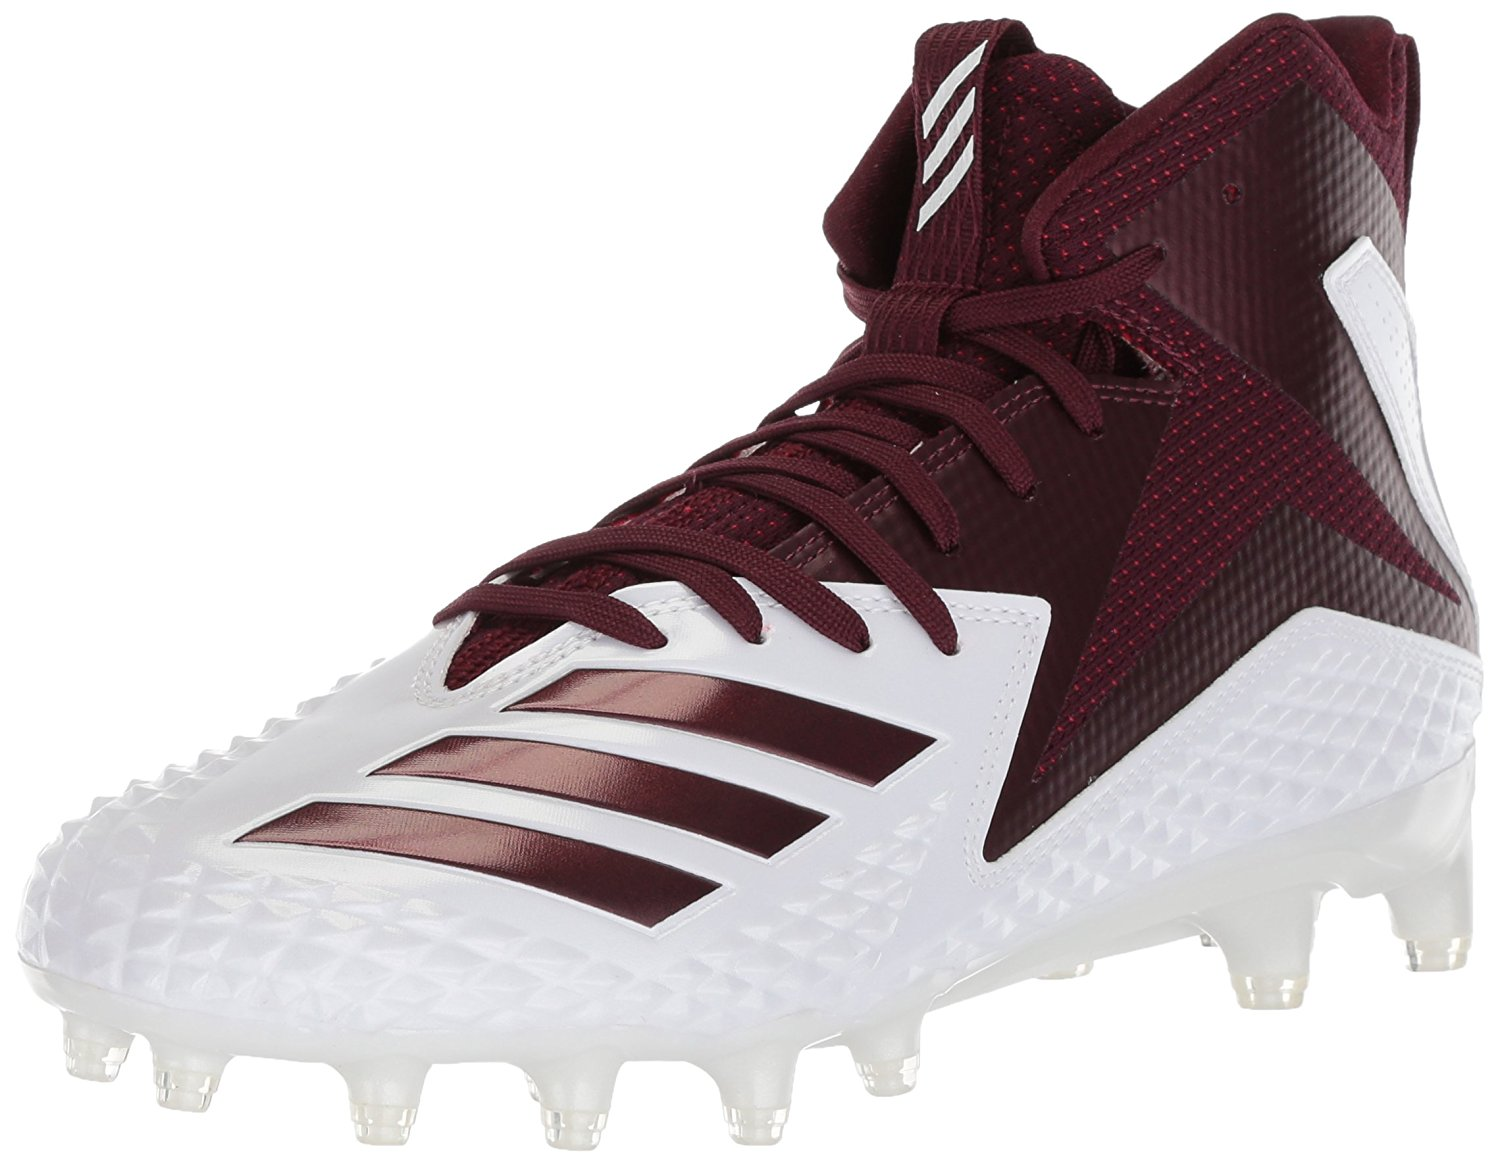 detailed look a5022 65f05 adidas Mens Freak X Carbon Mid Football Shoe, WhiteMaroonMaroon, Size